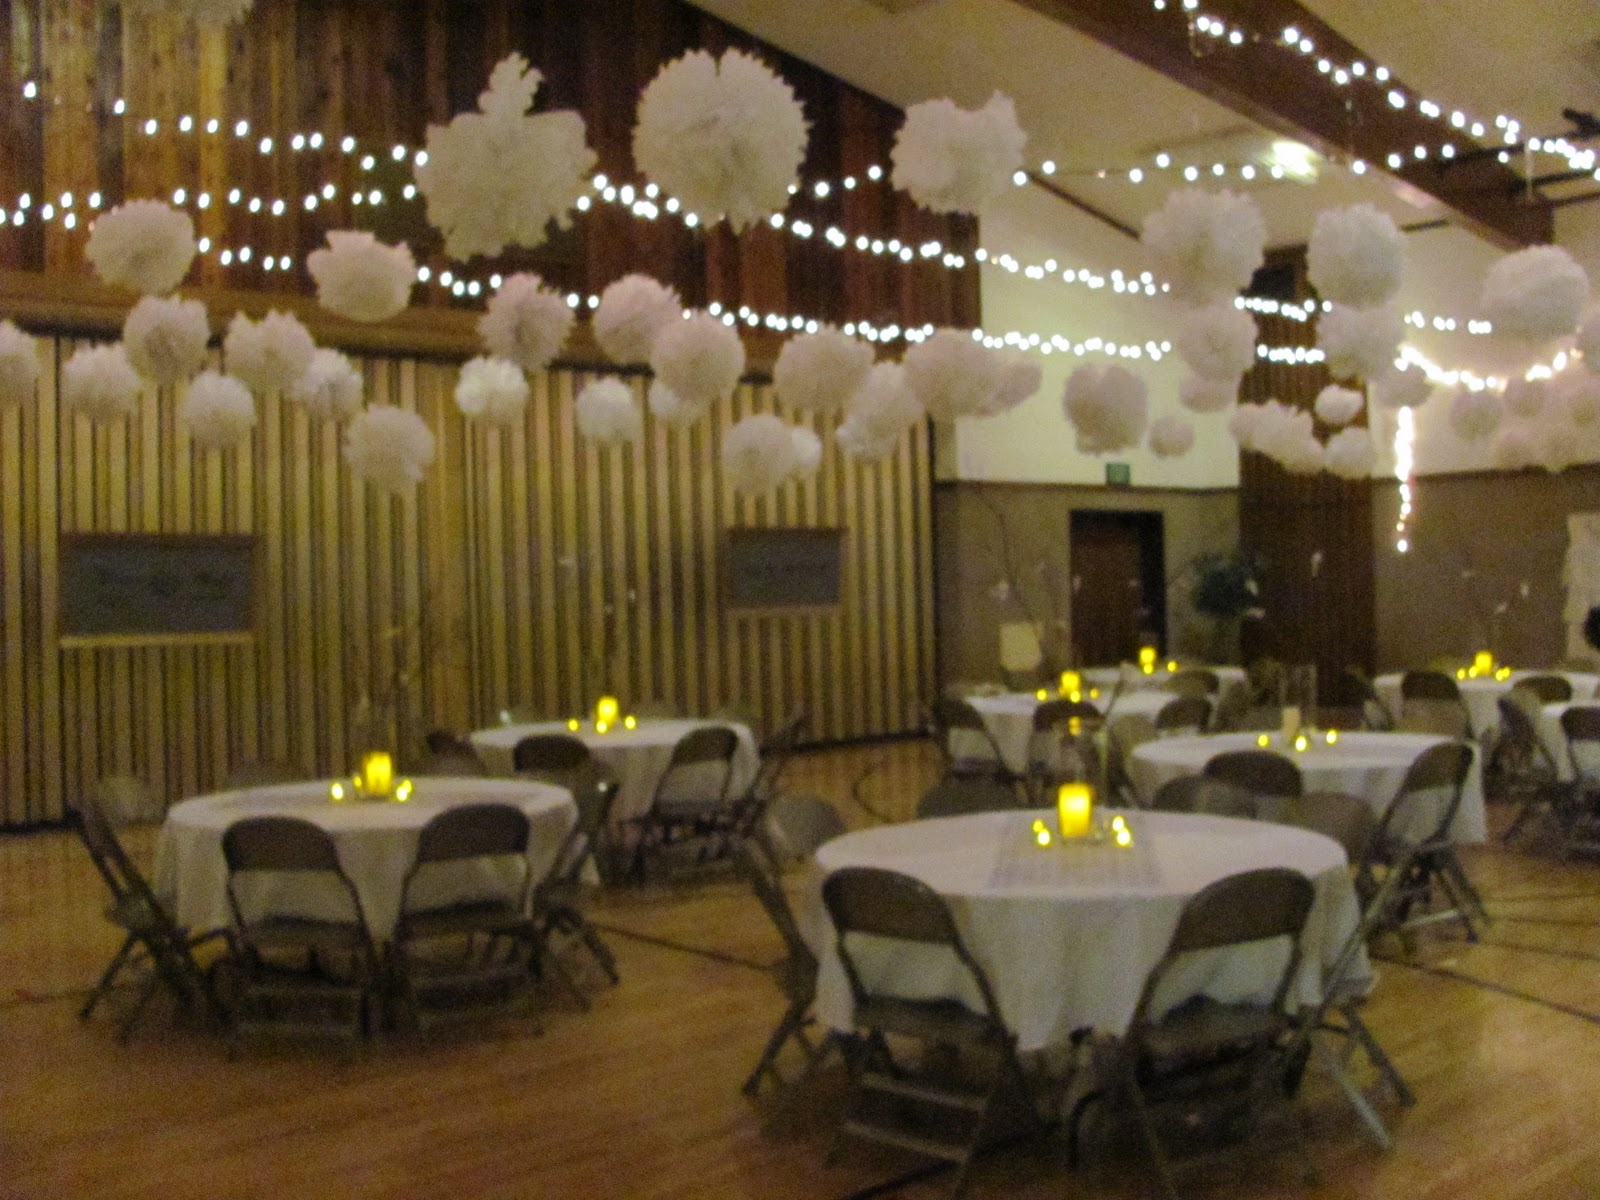 Calgary Catering. Simply Elegant is one of the top catering companies in Calgary, Alberta. We've catered events and done wedding catering since